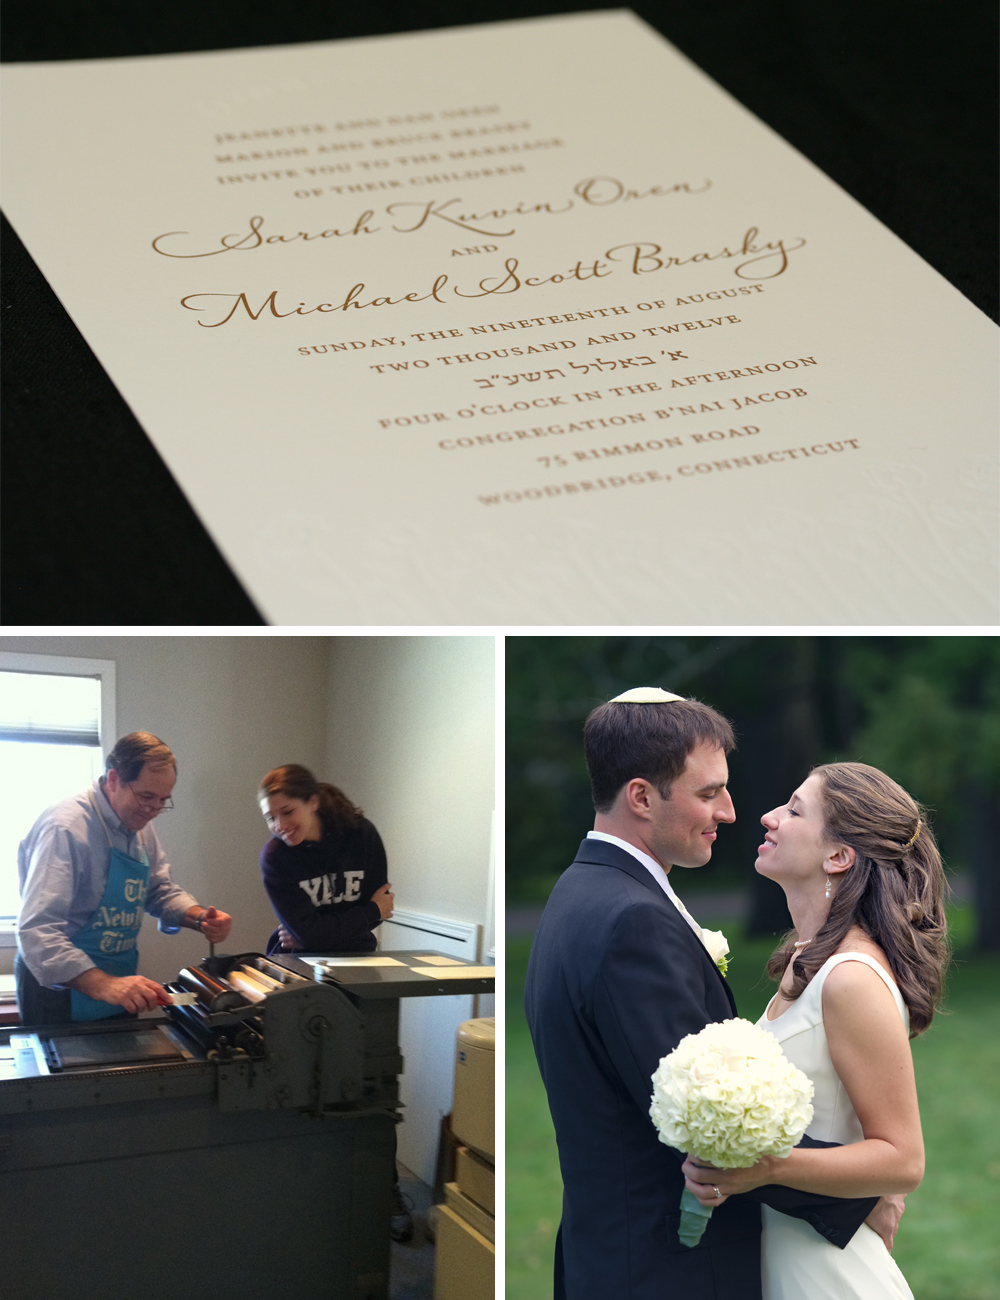 CONNETICUT JEWISH WEDDING INVITATION